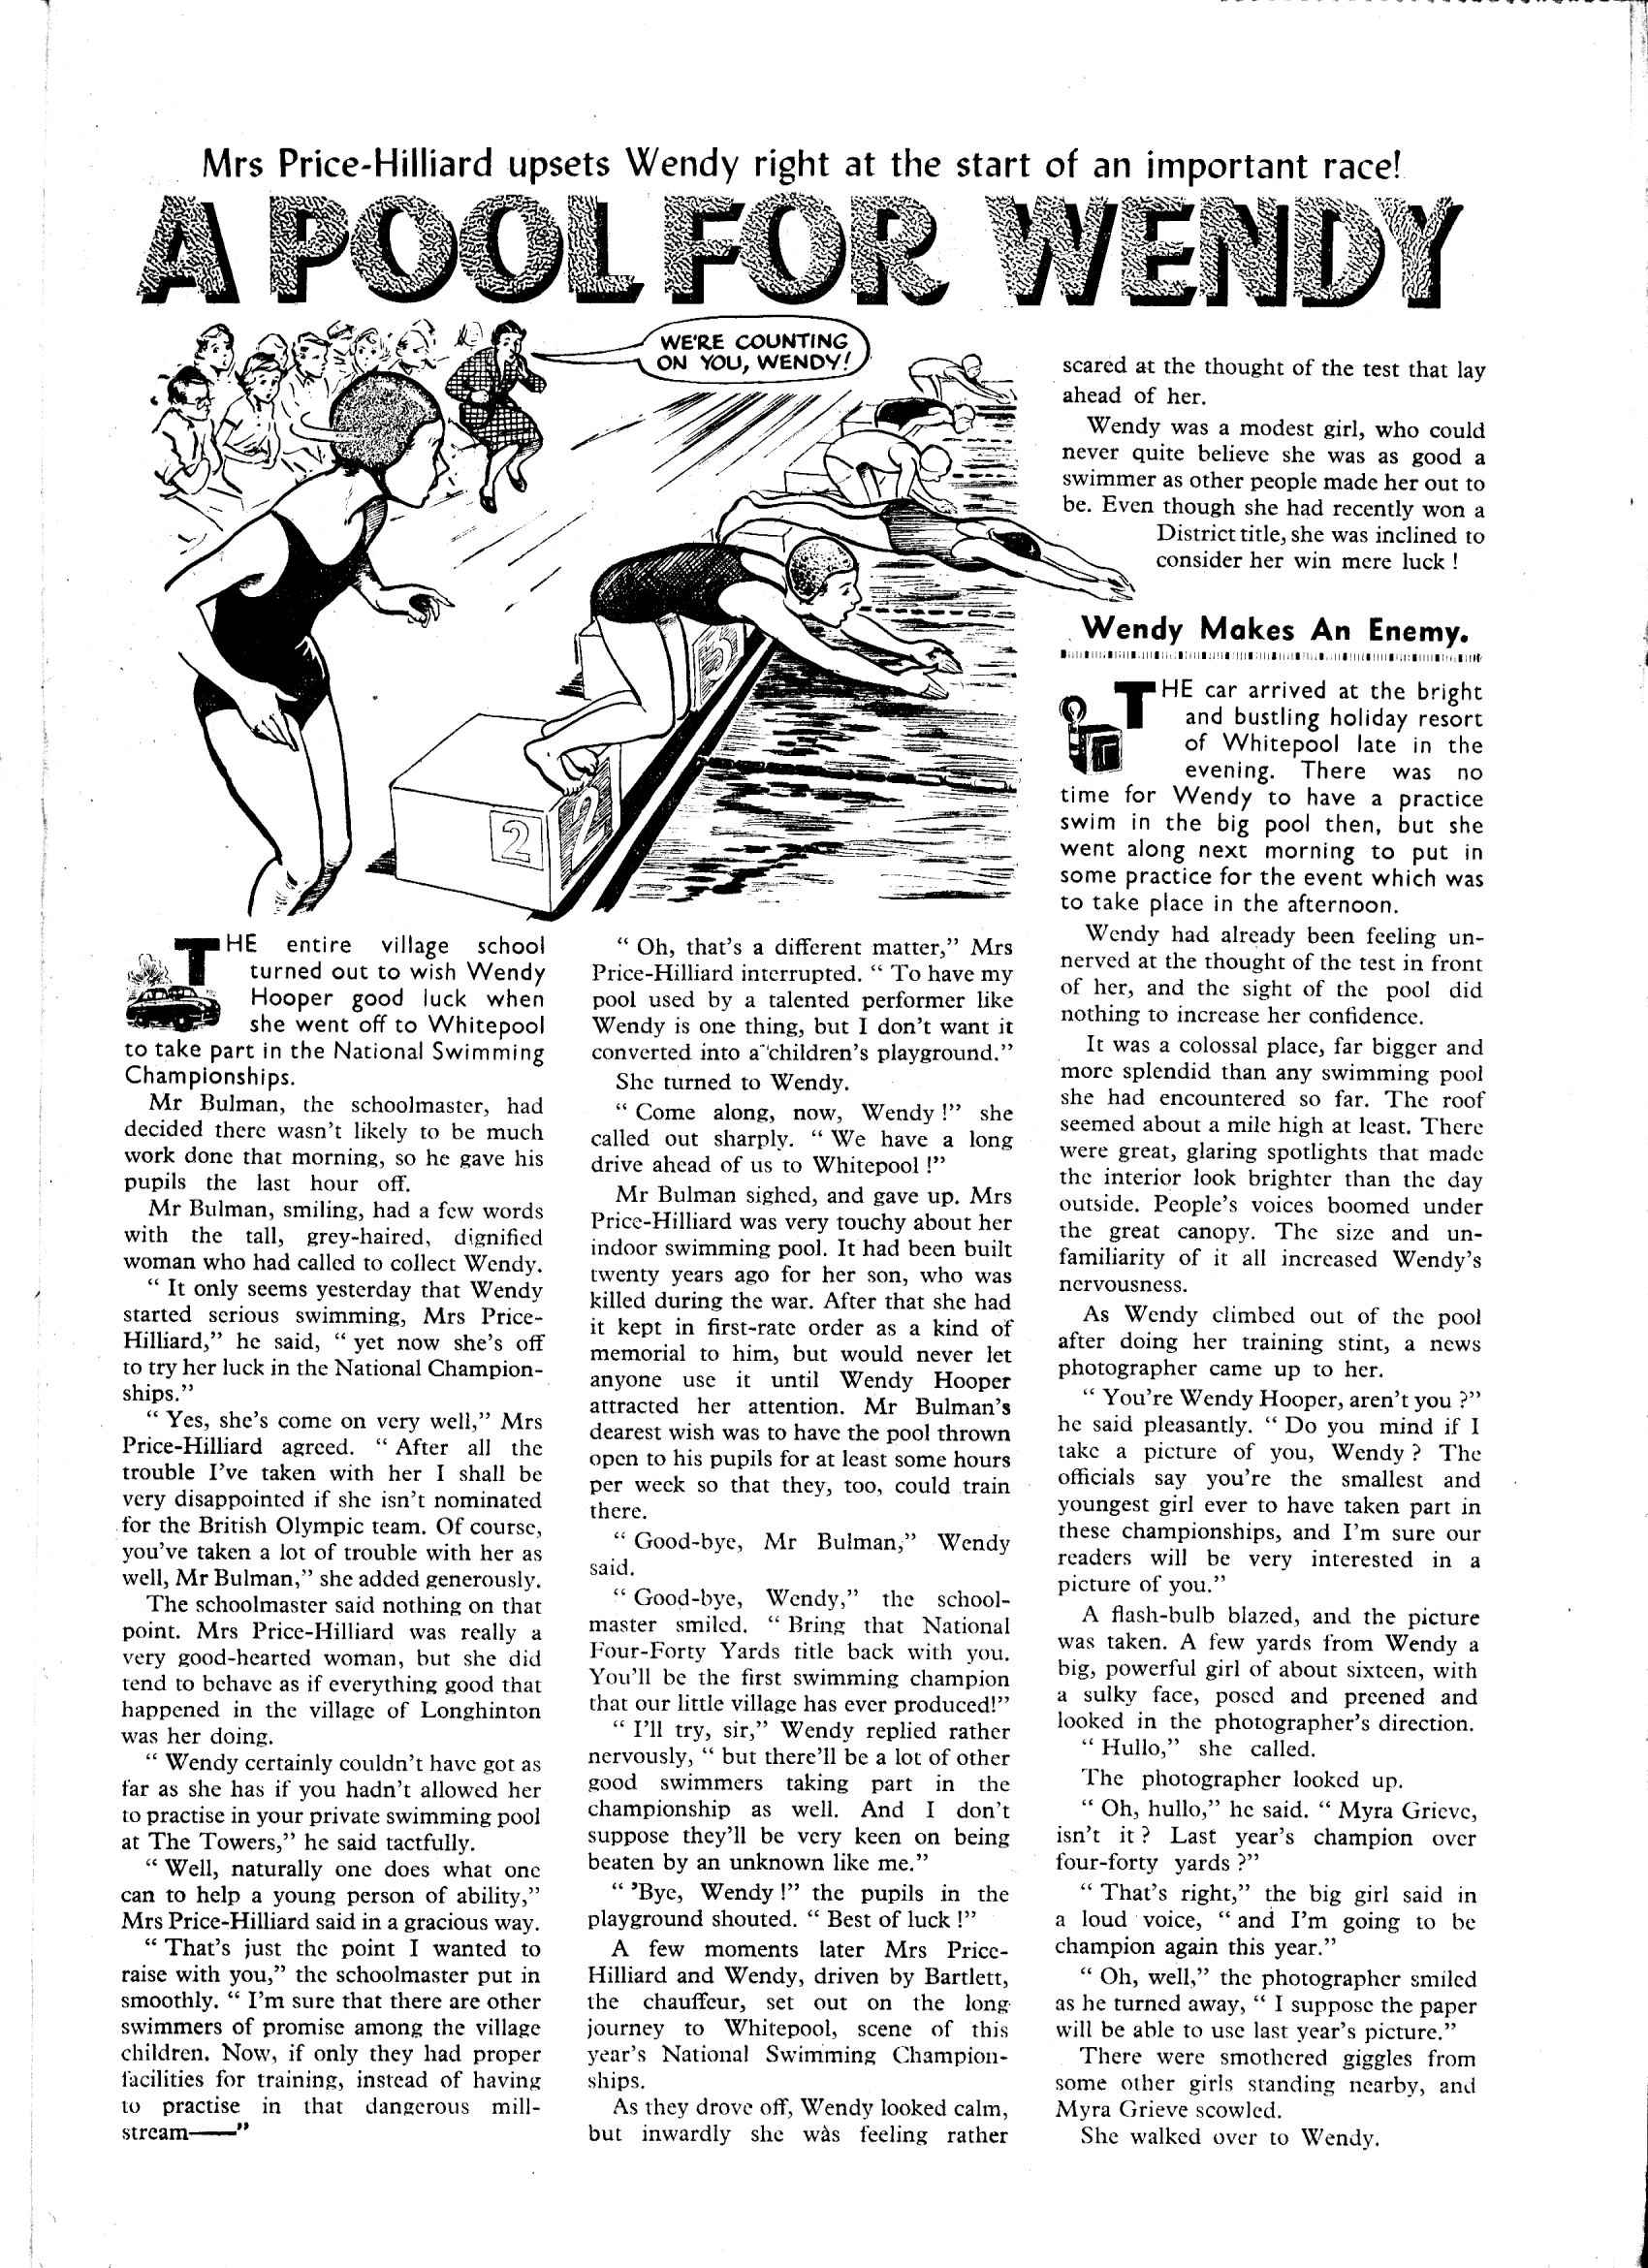 Read online Judy comic -  Issue #42 - 9